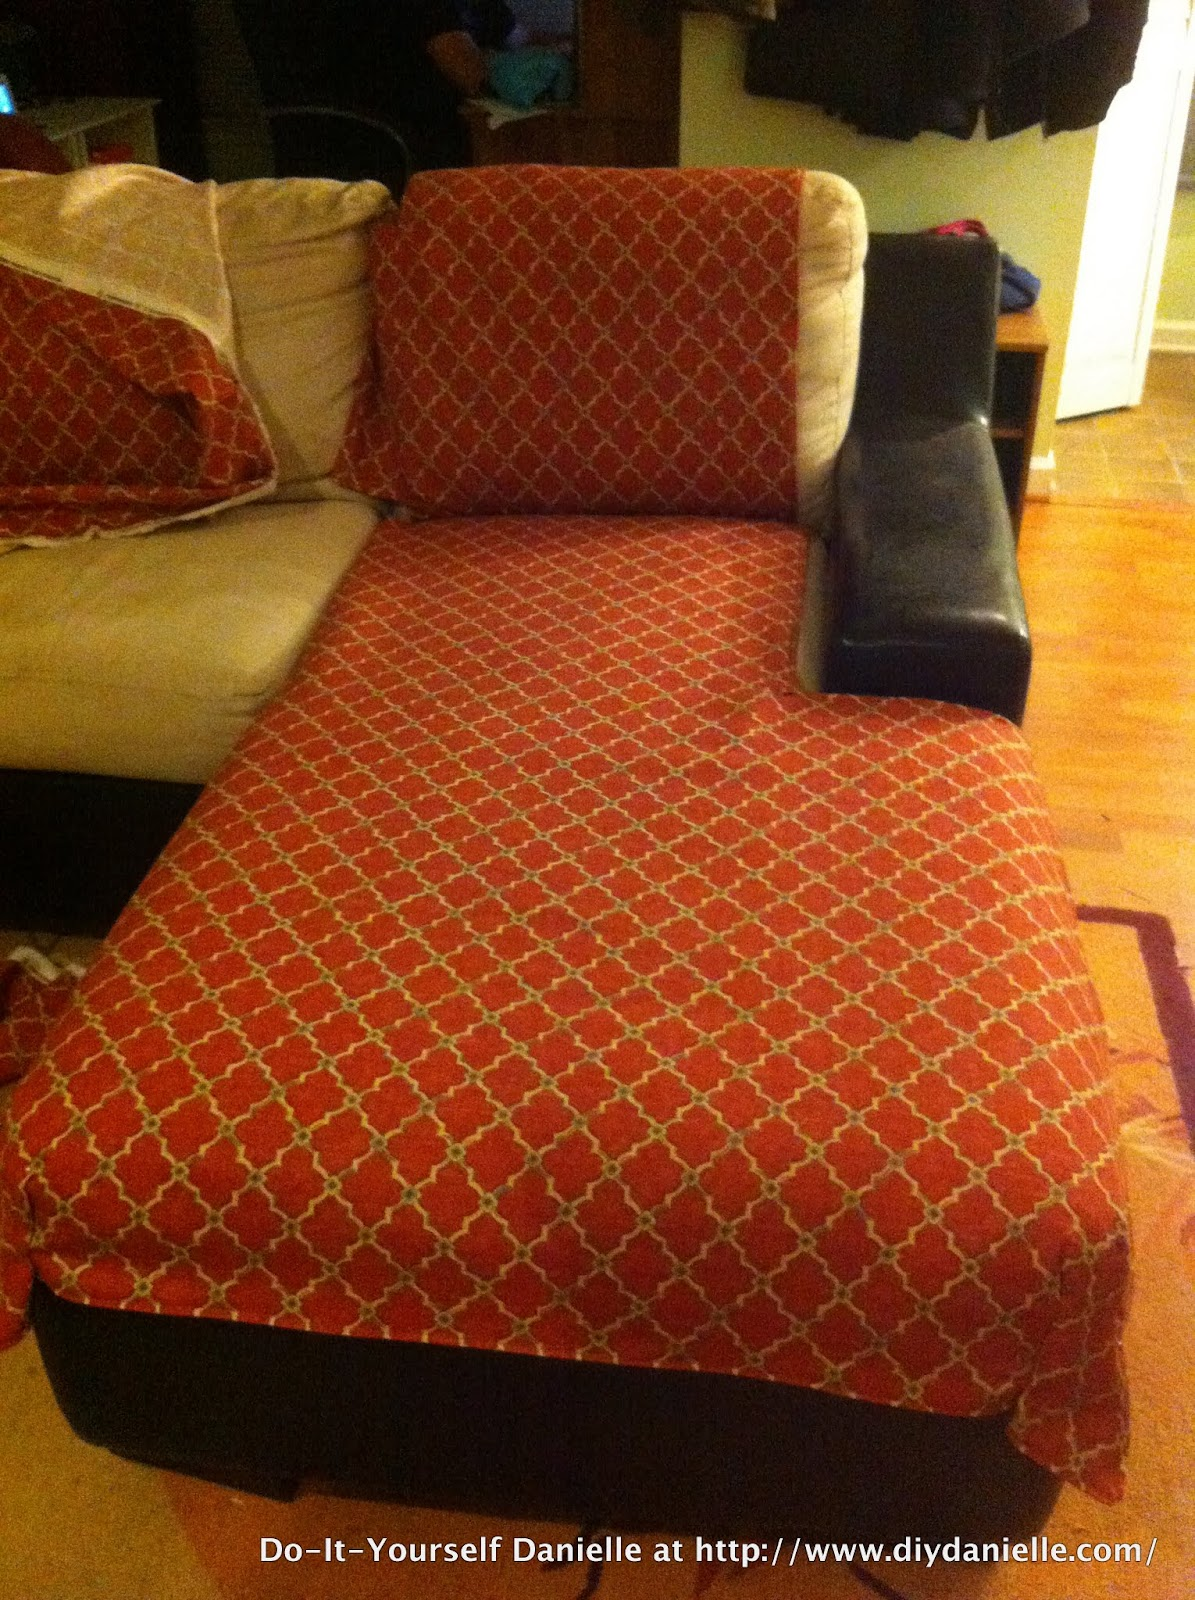 Sofa Coverings Dogs Beech Wood Table How To Sew An L Shaped Couch Cover Diy Danielle I Actually Didn T Have Enough Continuous Pieces Make The Other For Regular Part Of